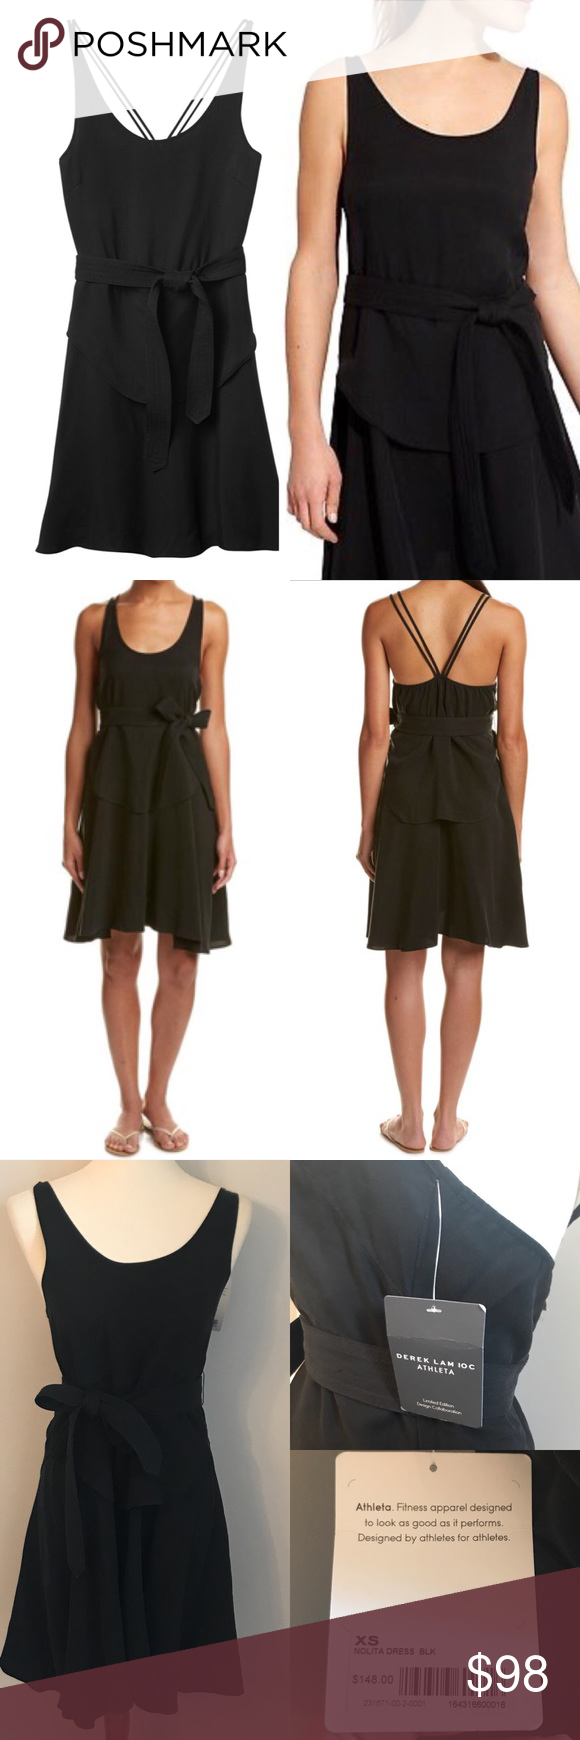 Flirtatious dress athleta images